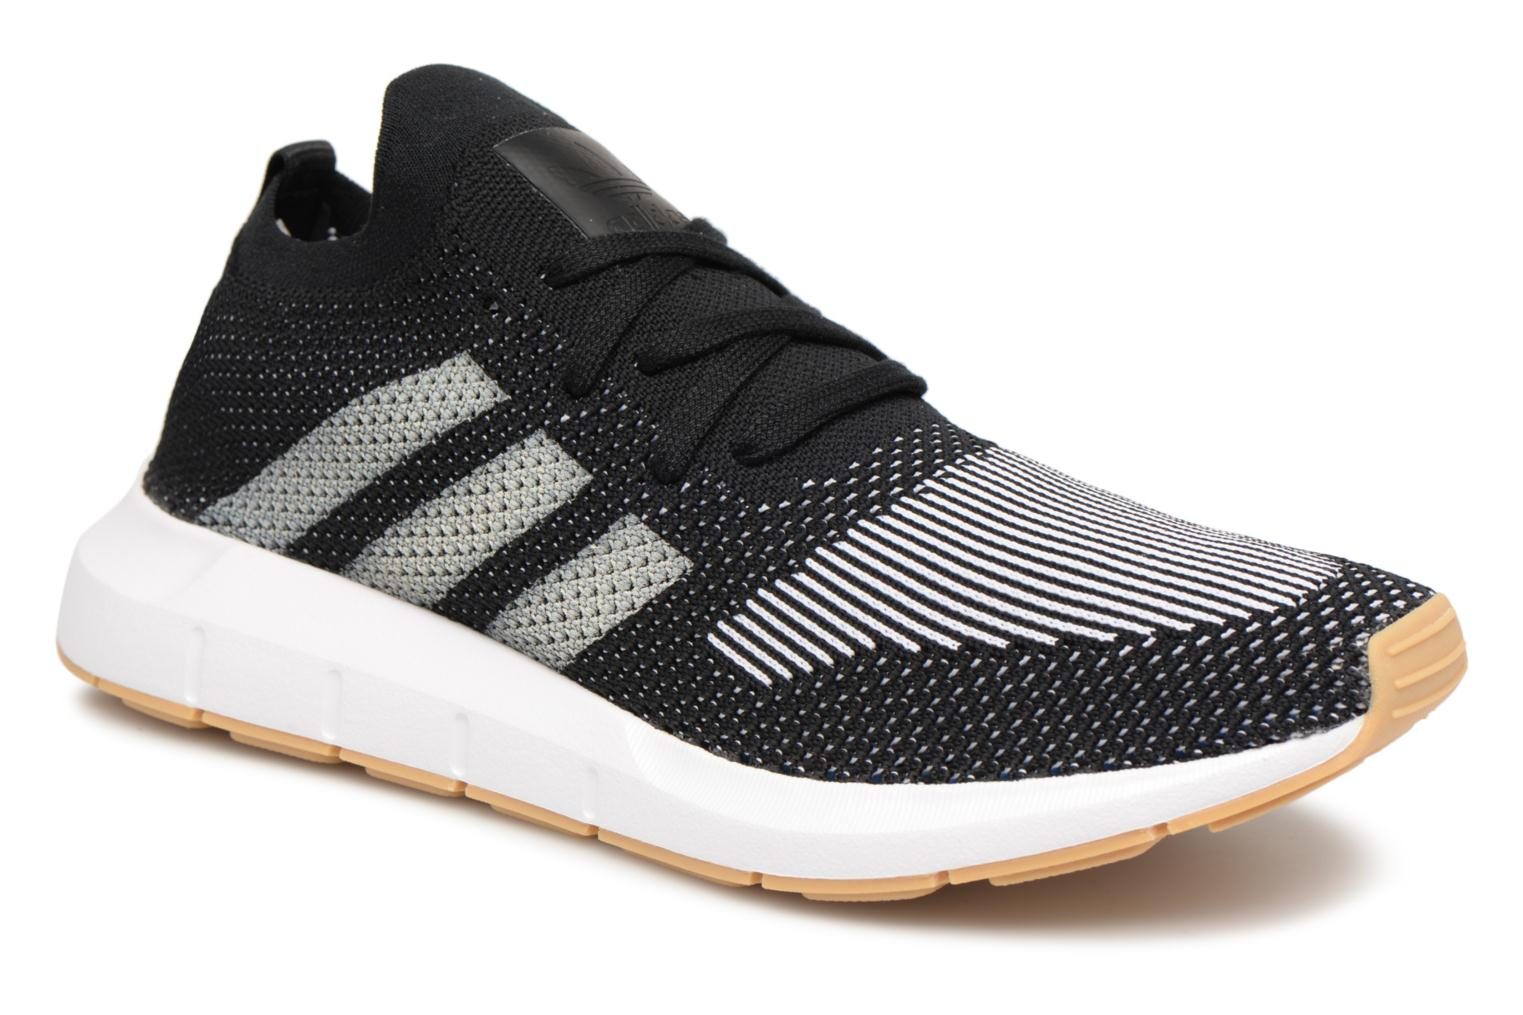 dad8ac502 Precios de sneakers Adidas Swift Run talla 41 baratas - Ofertas para ...